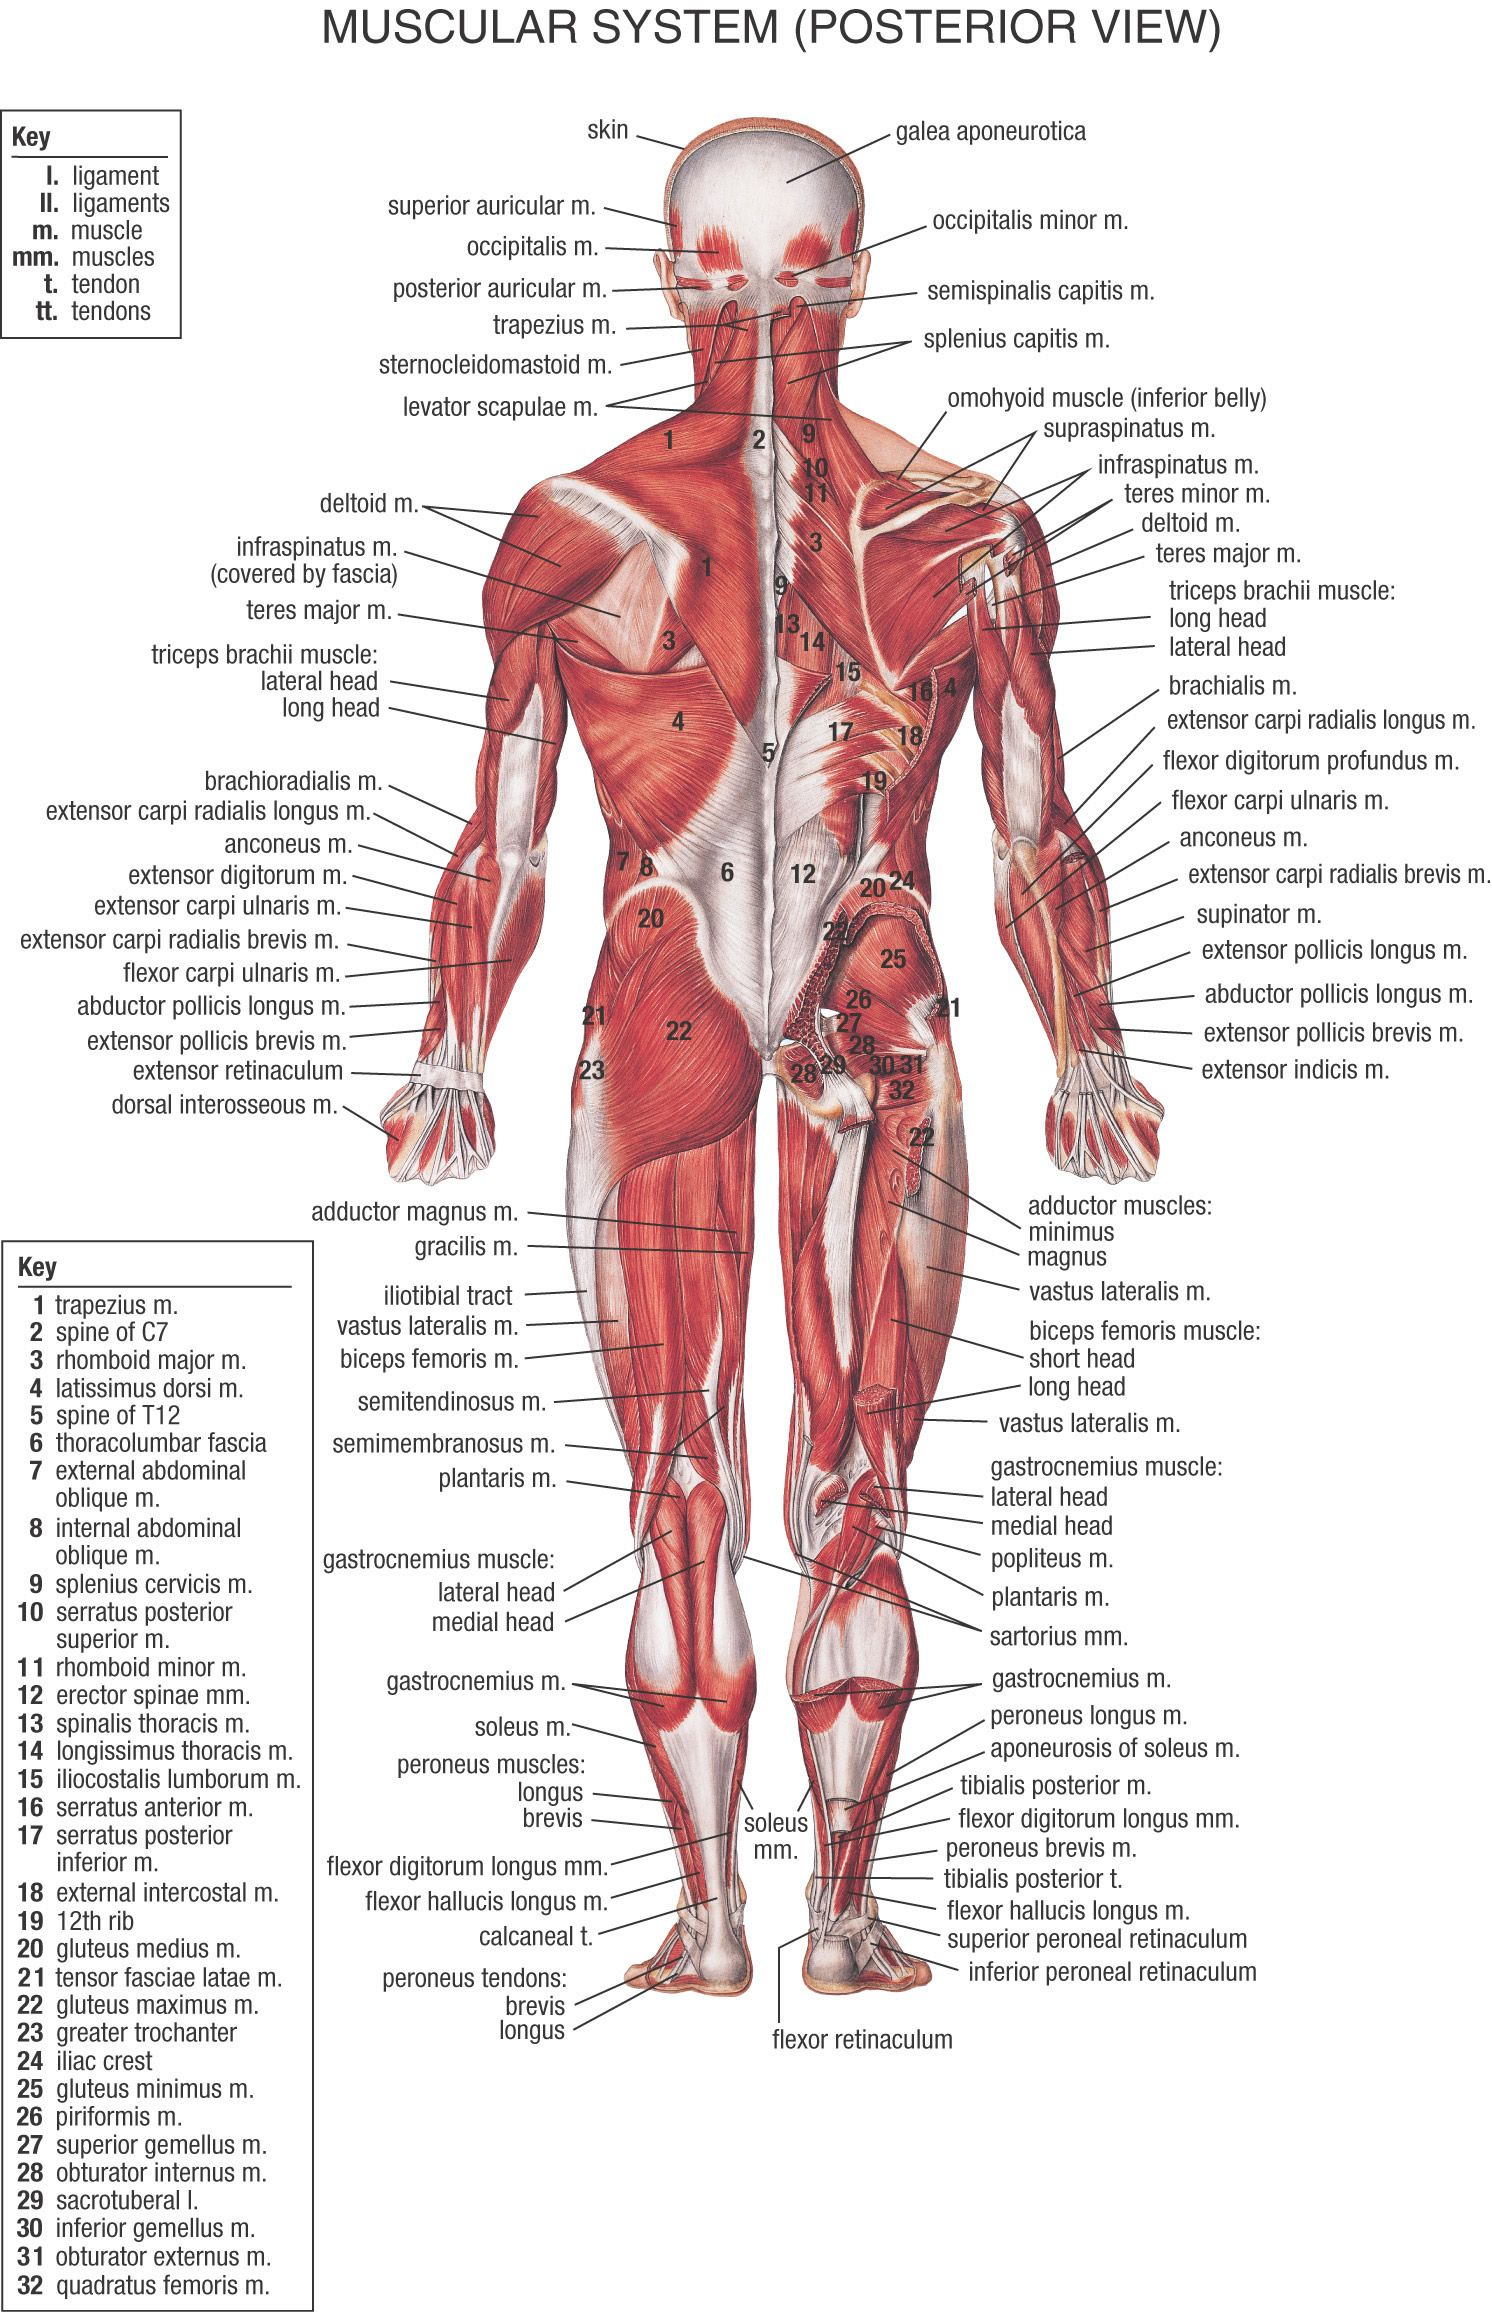 hb muscular system posterior 1,492×2,312 pixels | anatomy, Muscles